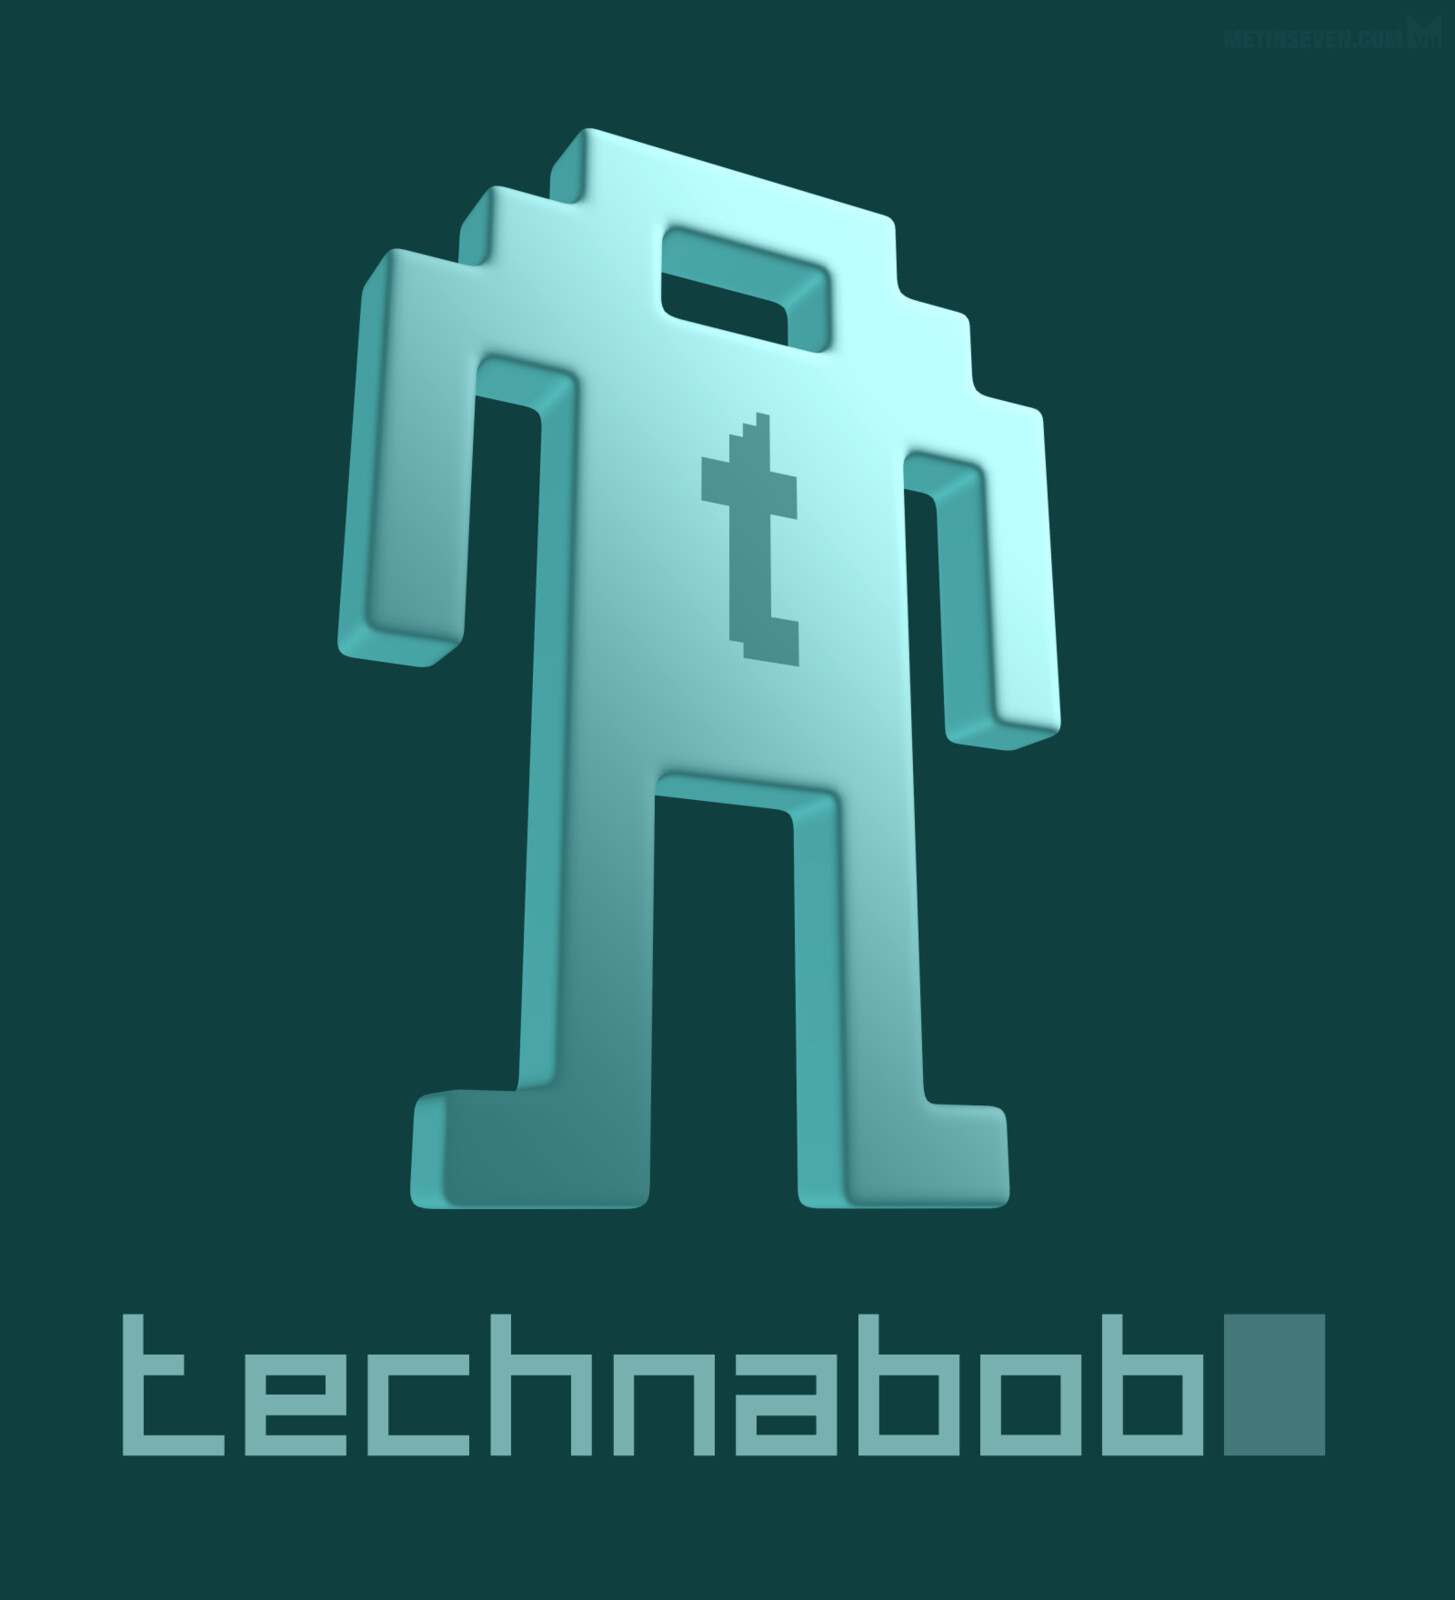 3D pixel style logo design for the Technabob blog